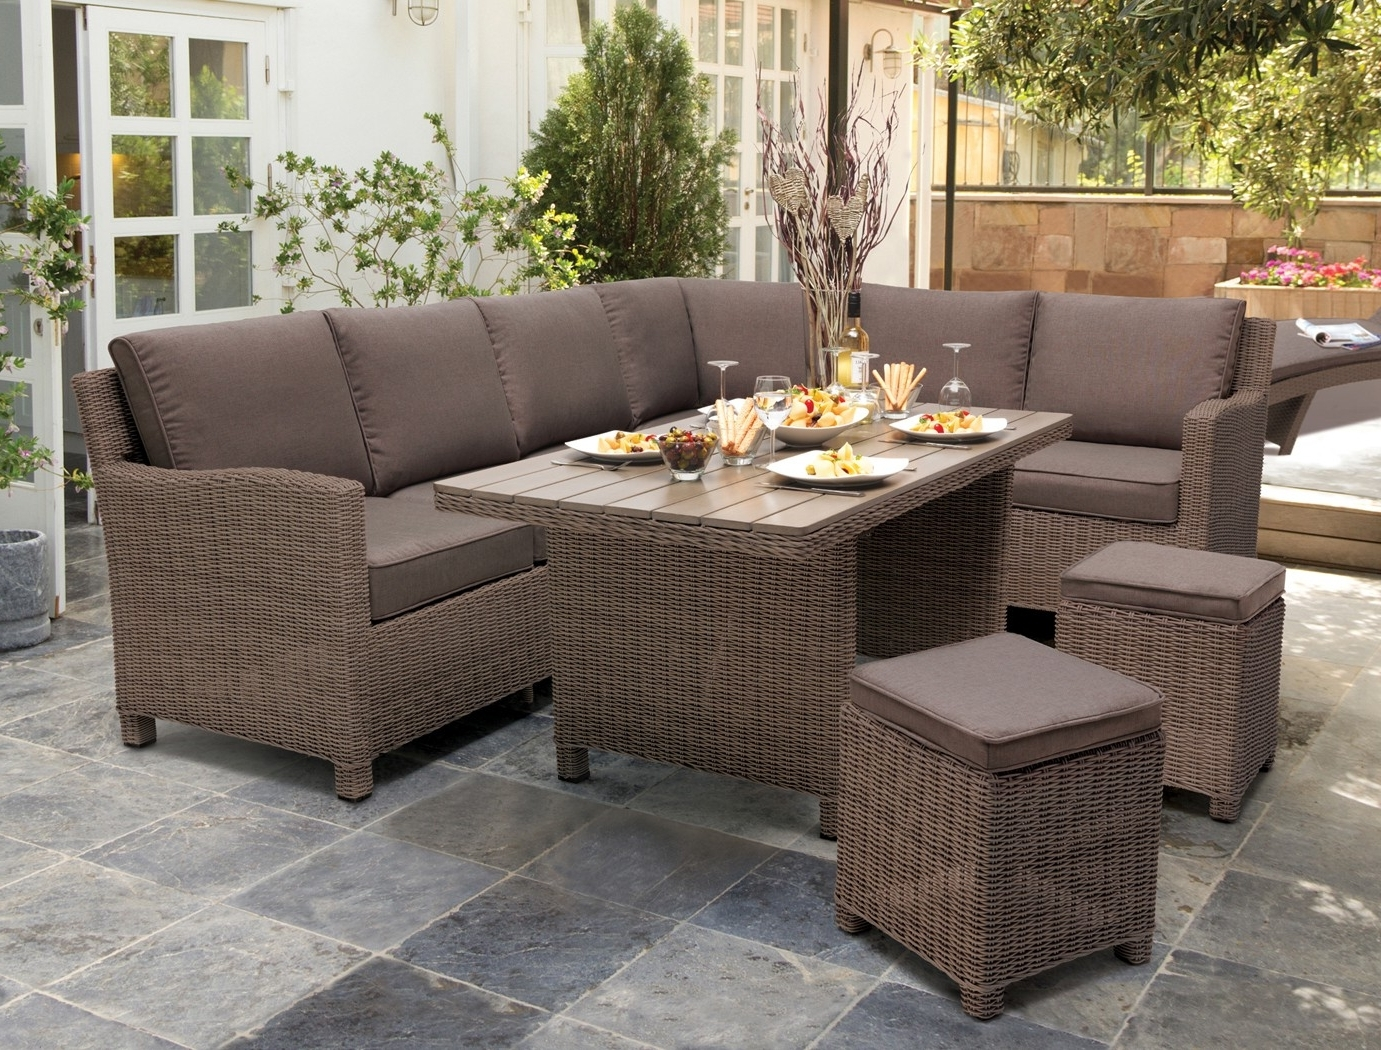 Kettler Palma Corner Set – Kettler Furniture – Patio Furniture Intended For Well Known Krevco Patio Umbrellas (Gallery 8 of 20)